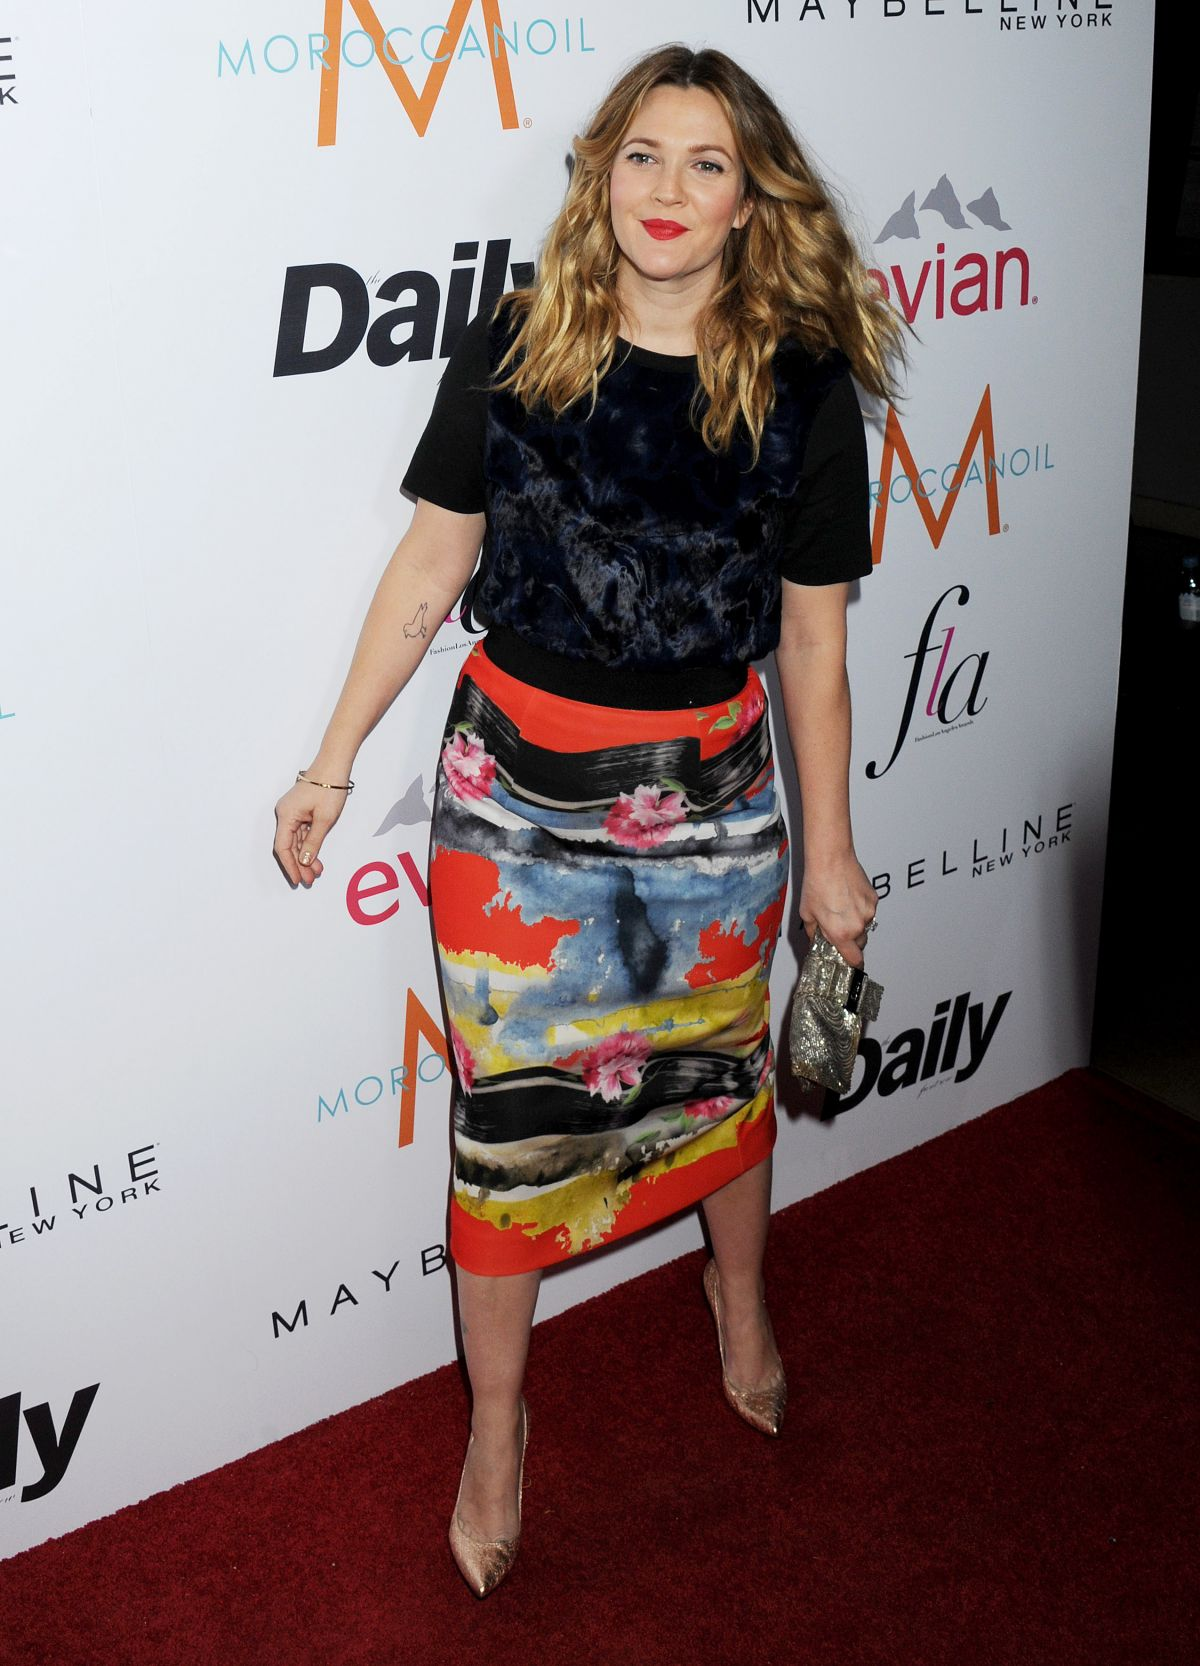 drew-barrymore-at-daily-front-row-fashion-los-angeles-awards-show_18